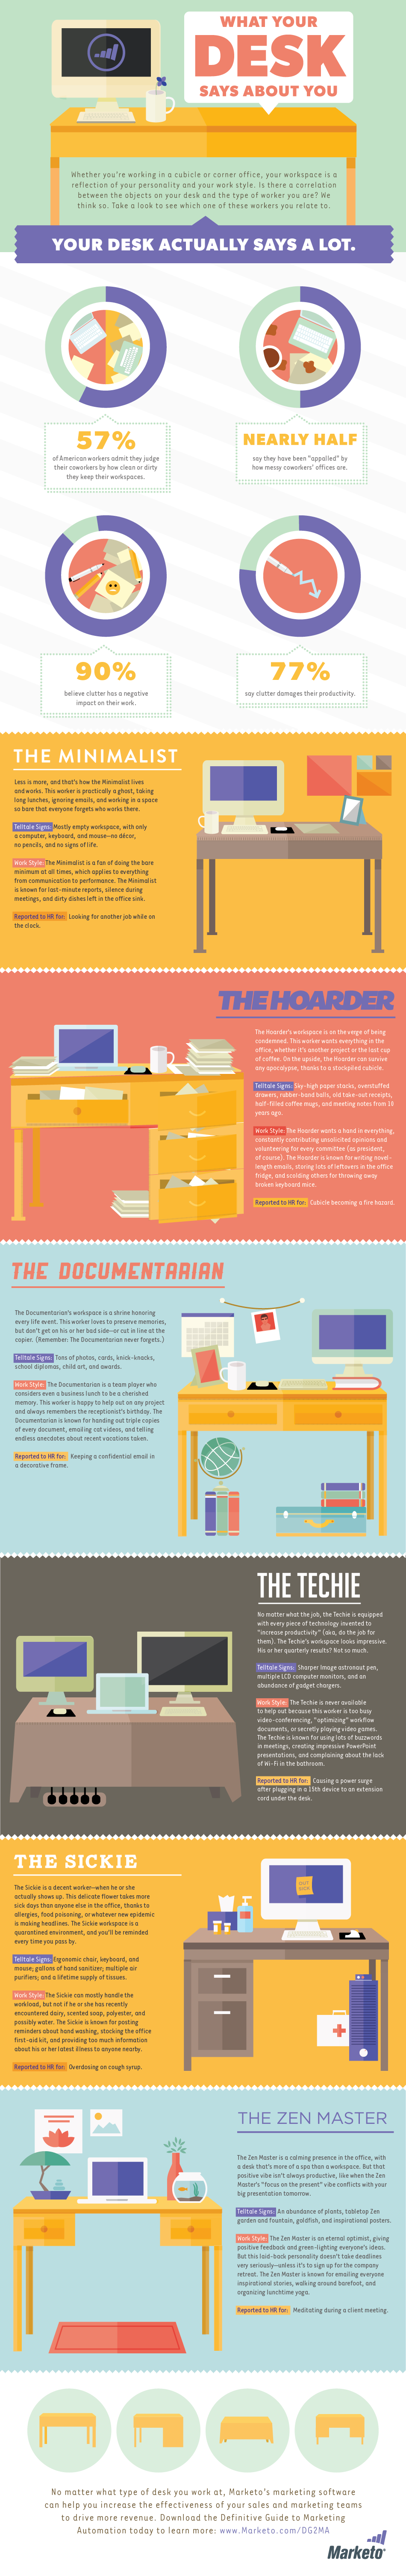 desk_handwriting_infographic